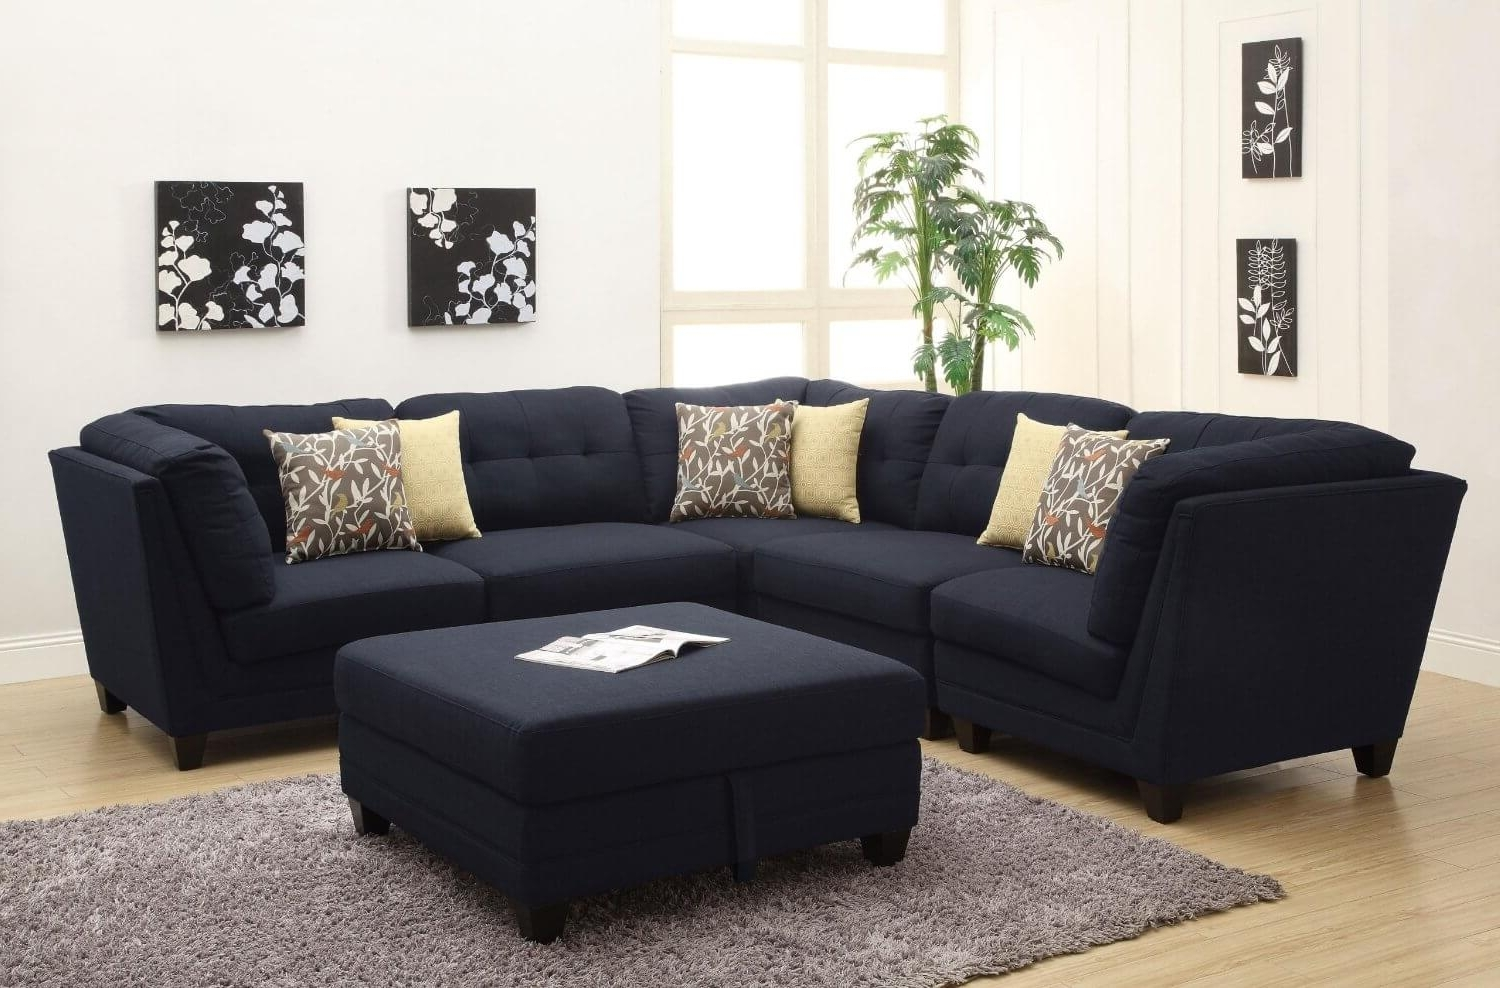 Sectional Sofas Under 900 Intended For Popular 100 Awesome Sectional Sofas Under $1,000 (2018) (View 4 of 15)